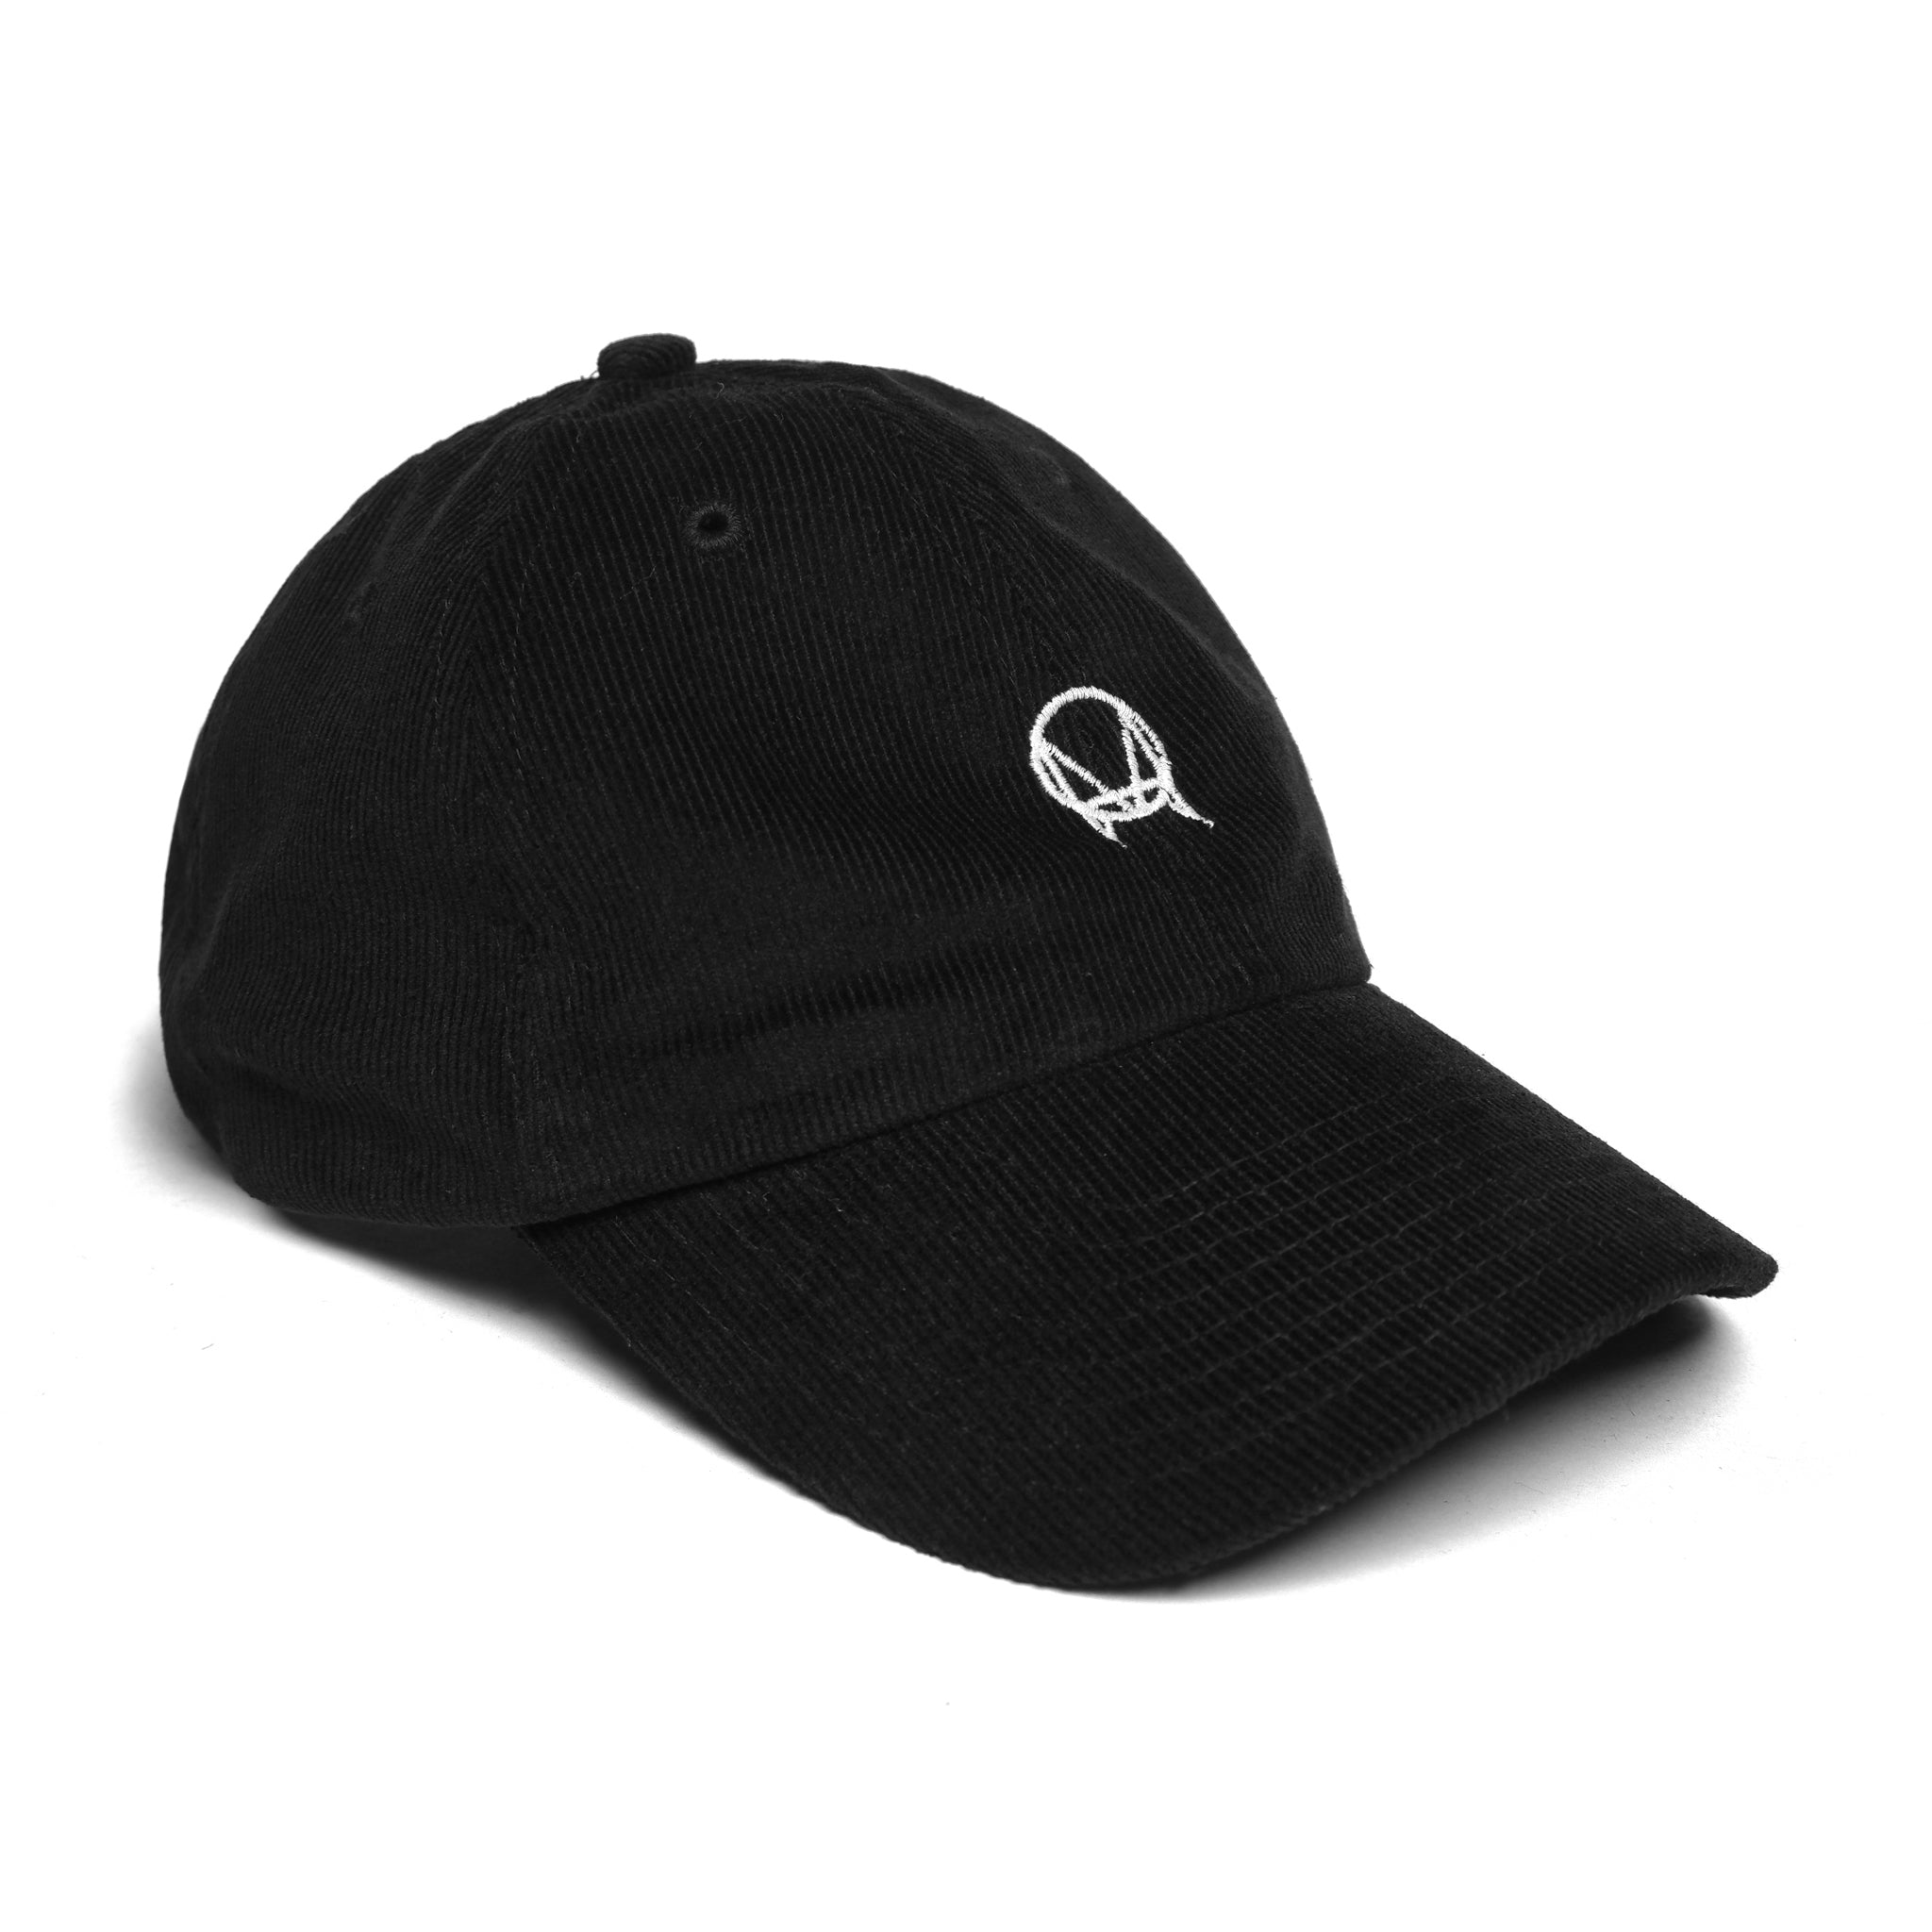 OWSLA CORDUROY DAD HAT - BLACK